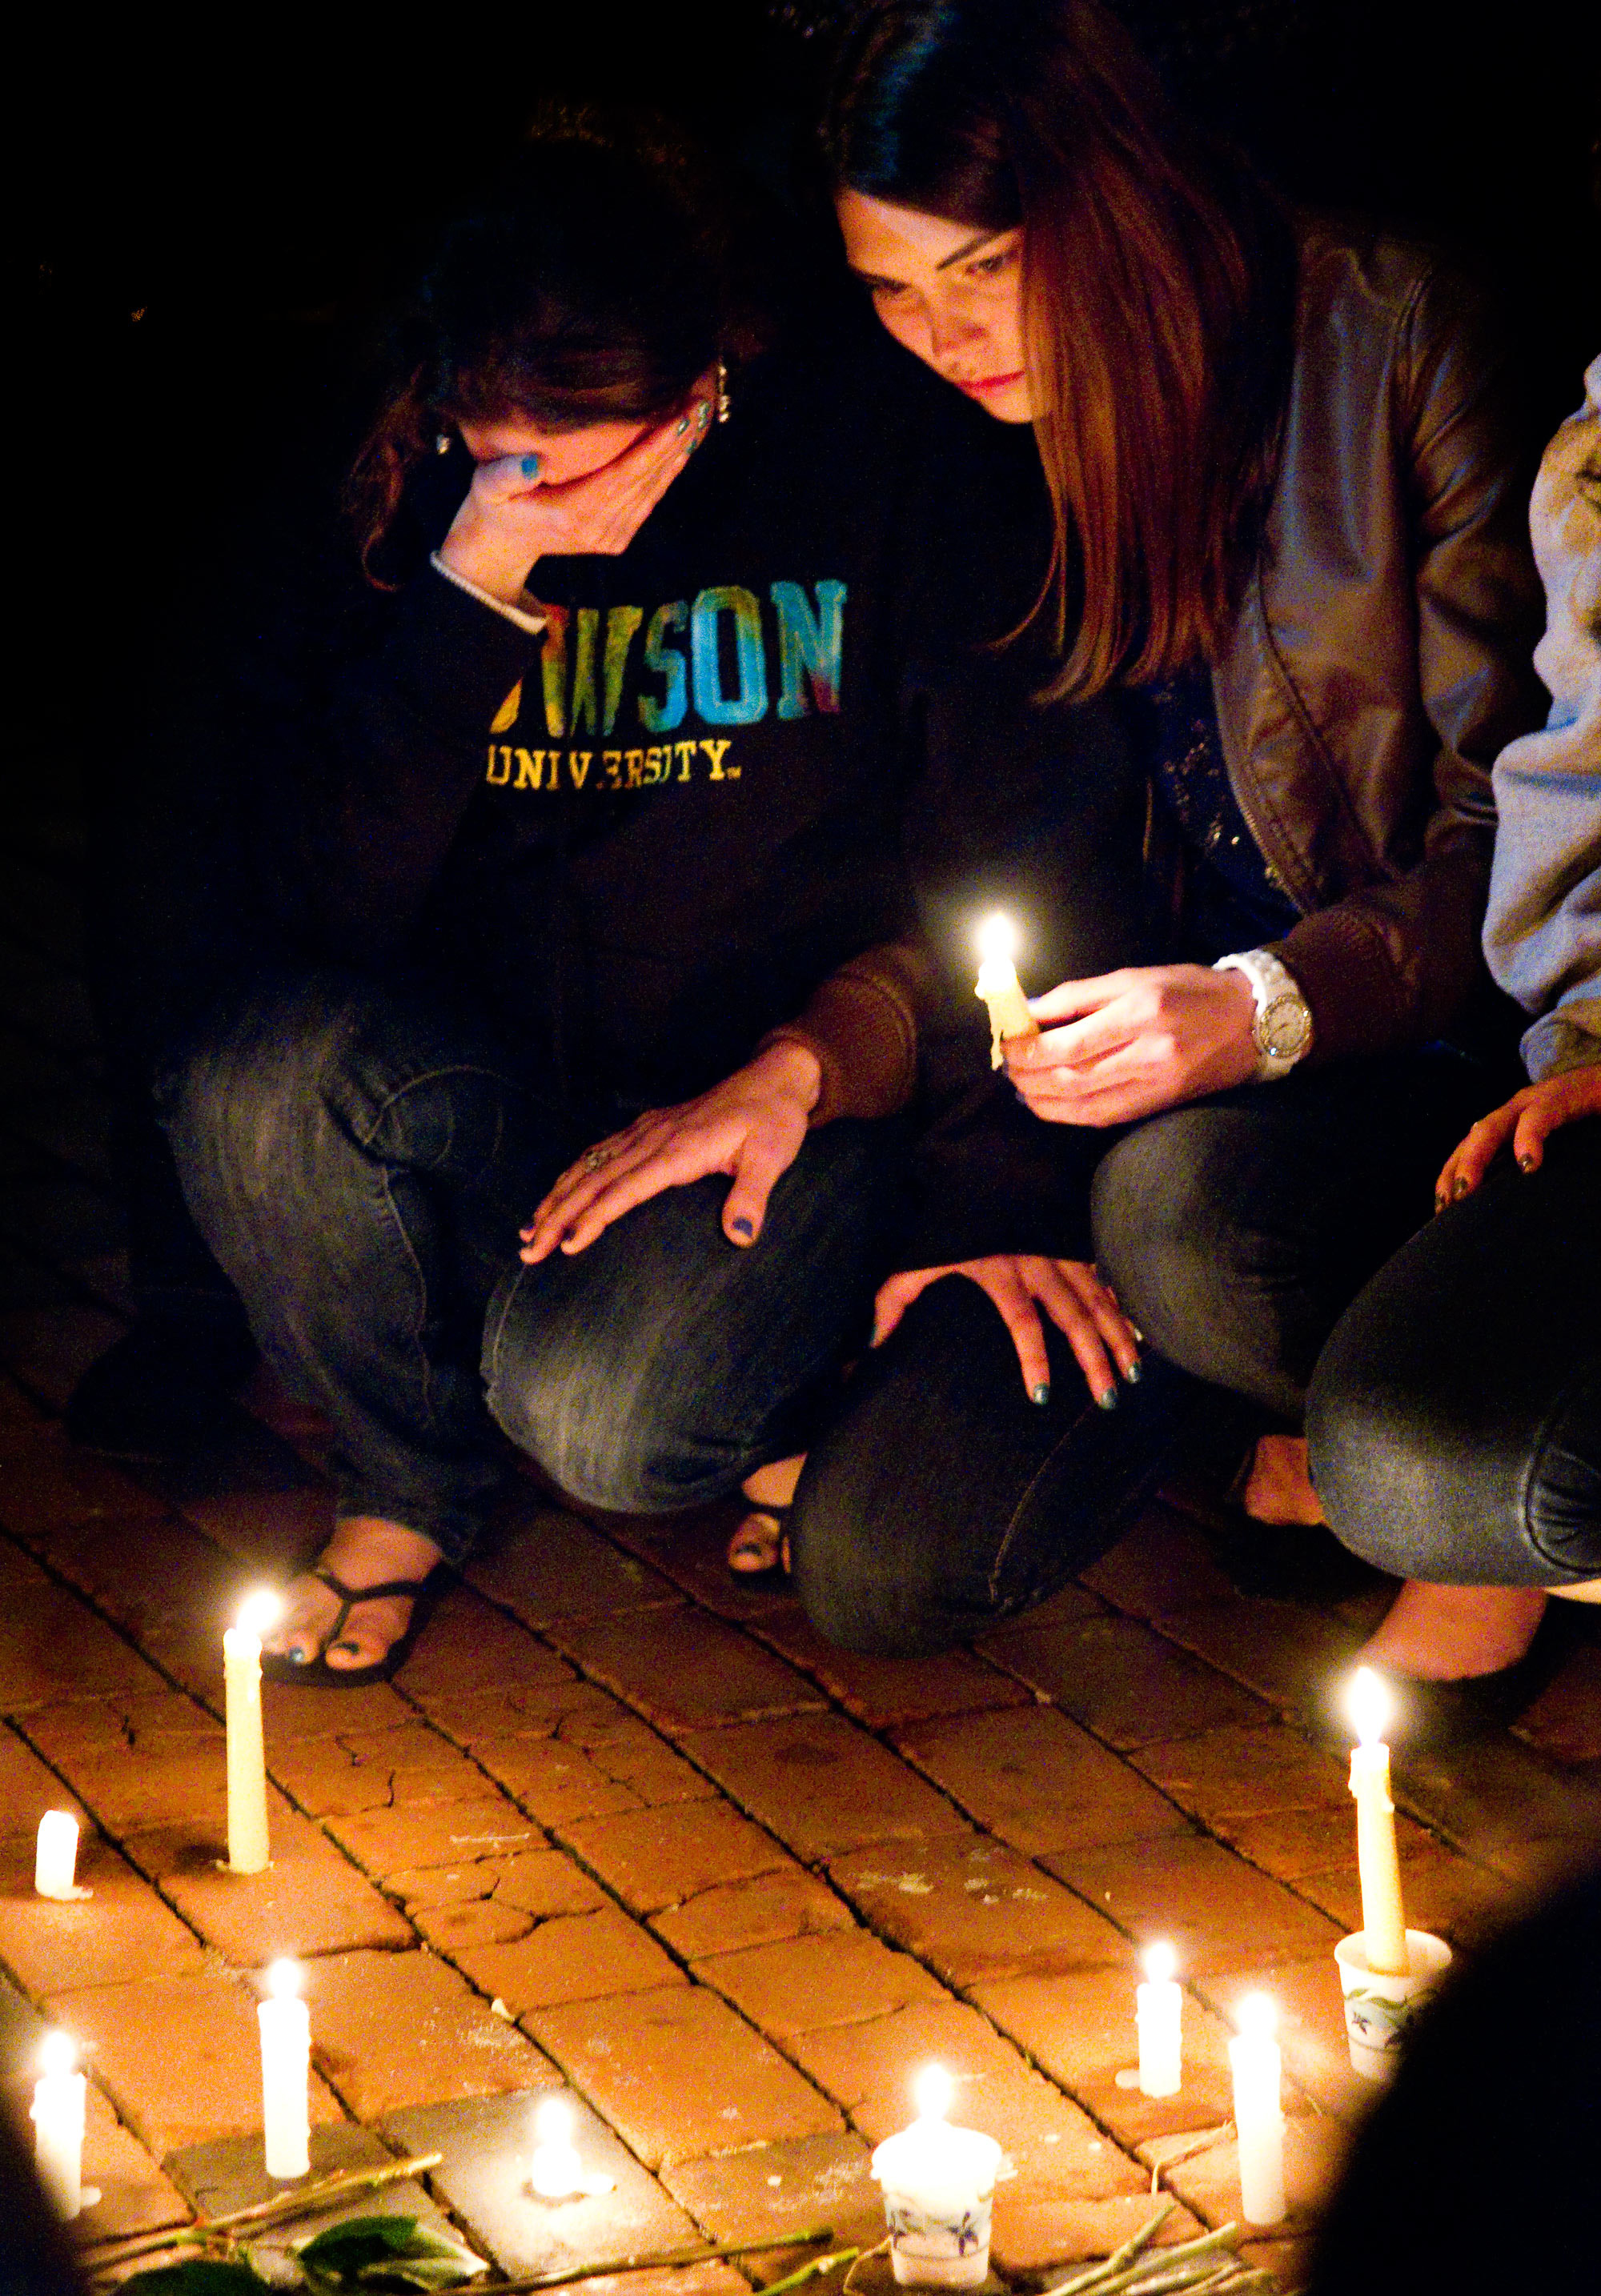 Towson University students gather together to mourn the death of two  fraternity members who died over the same weekend in two separate  incidents on March 31, 2012 in Baltimore, Md.